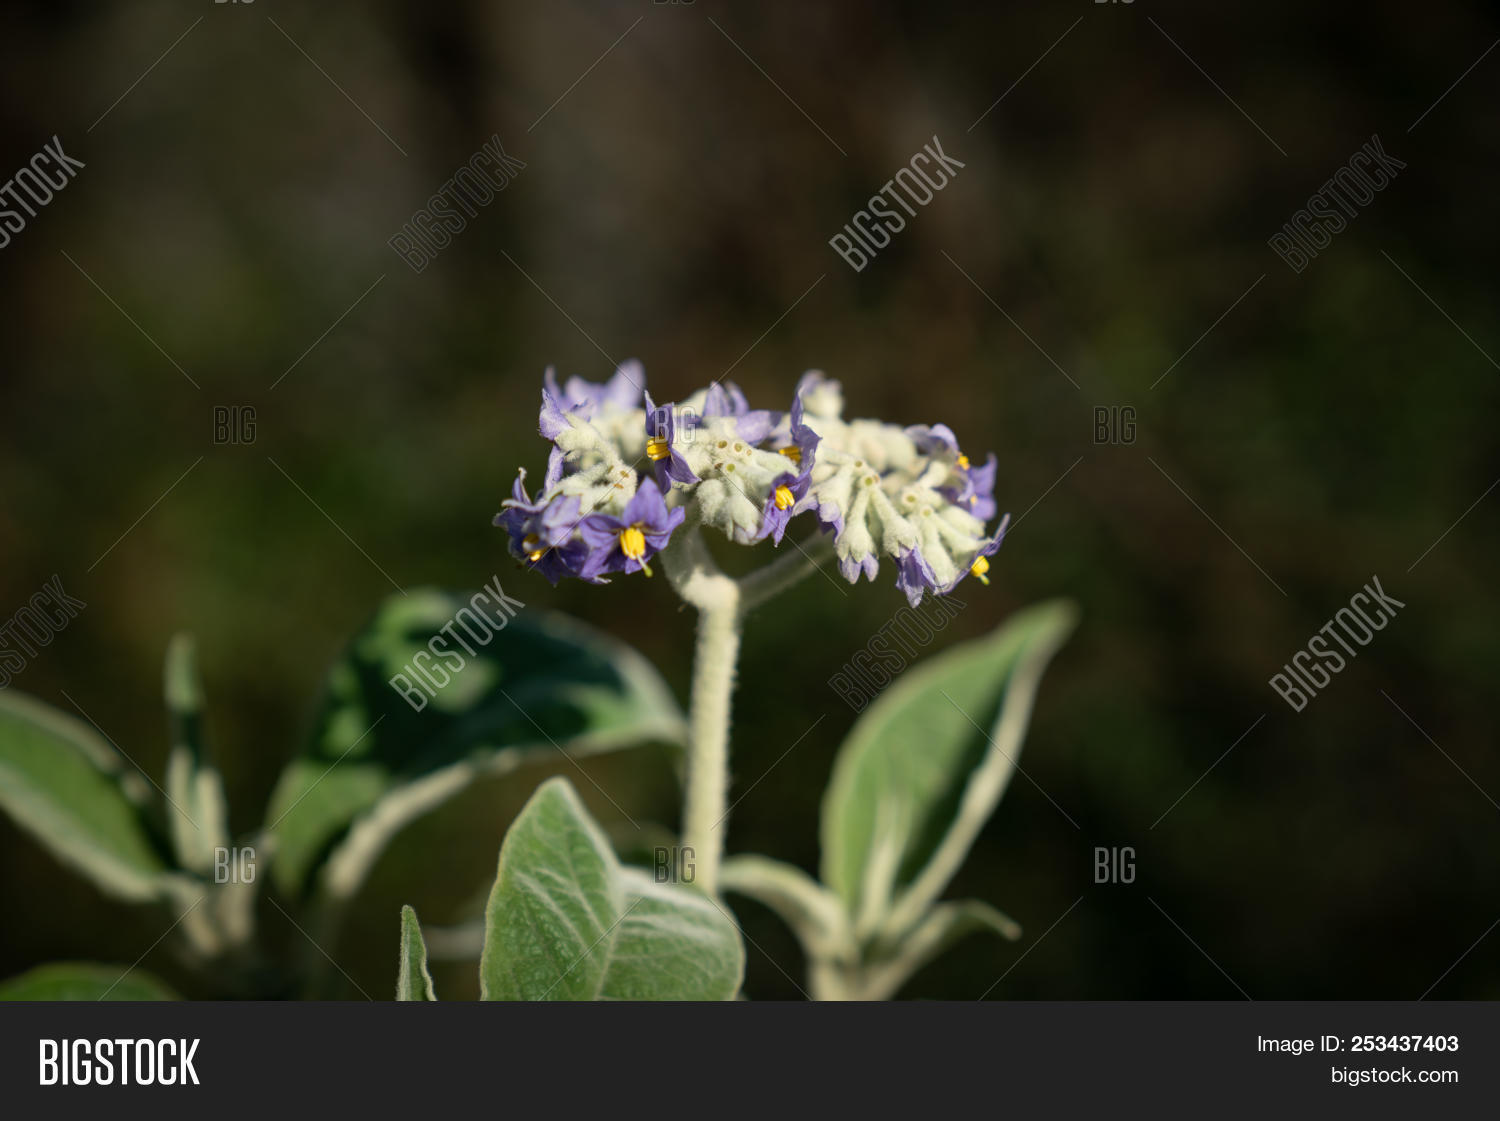 poisonous plant flowers of nightshade close up with purple and and mightylinksfo